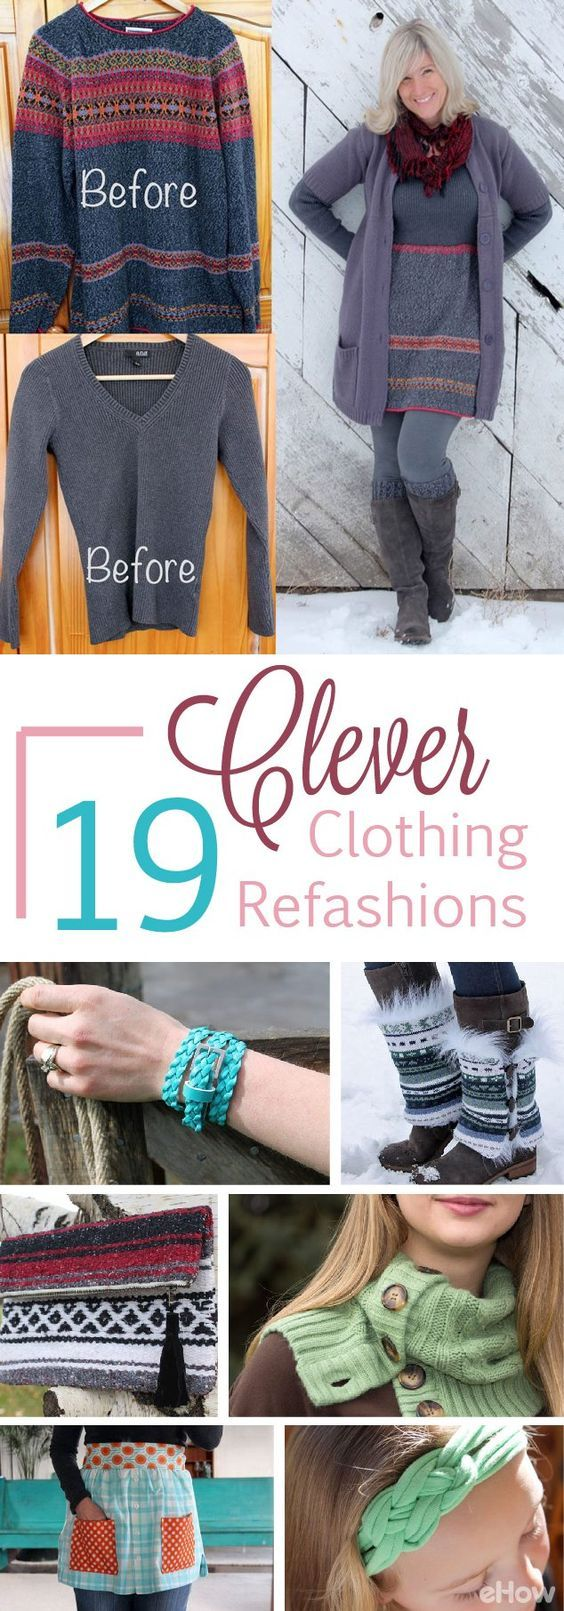 Refashioning old clothes into new, beautiful pieces makes shopping at the thrift store (or even in your own closet) feel like a gold mine!